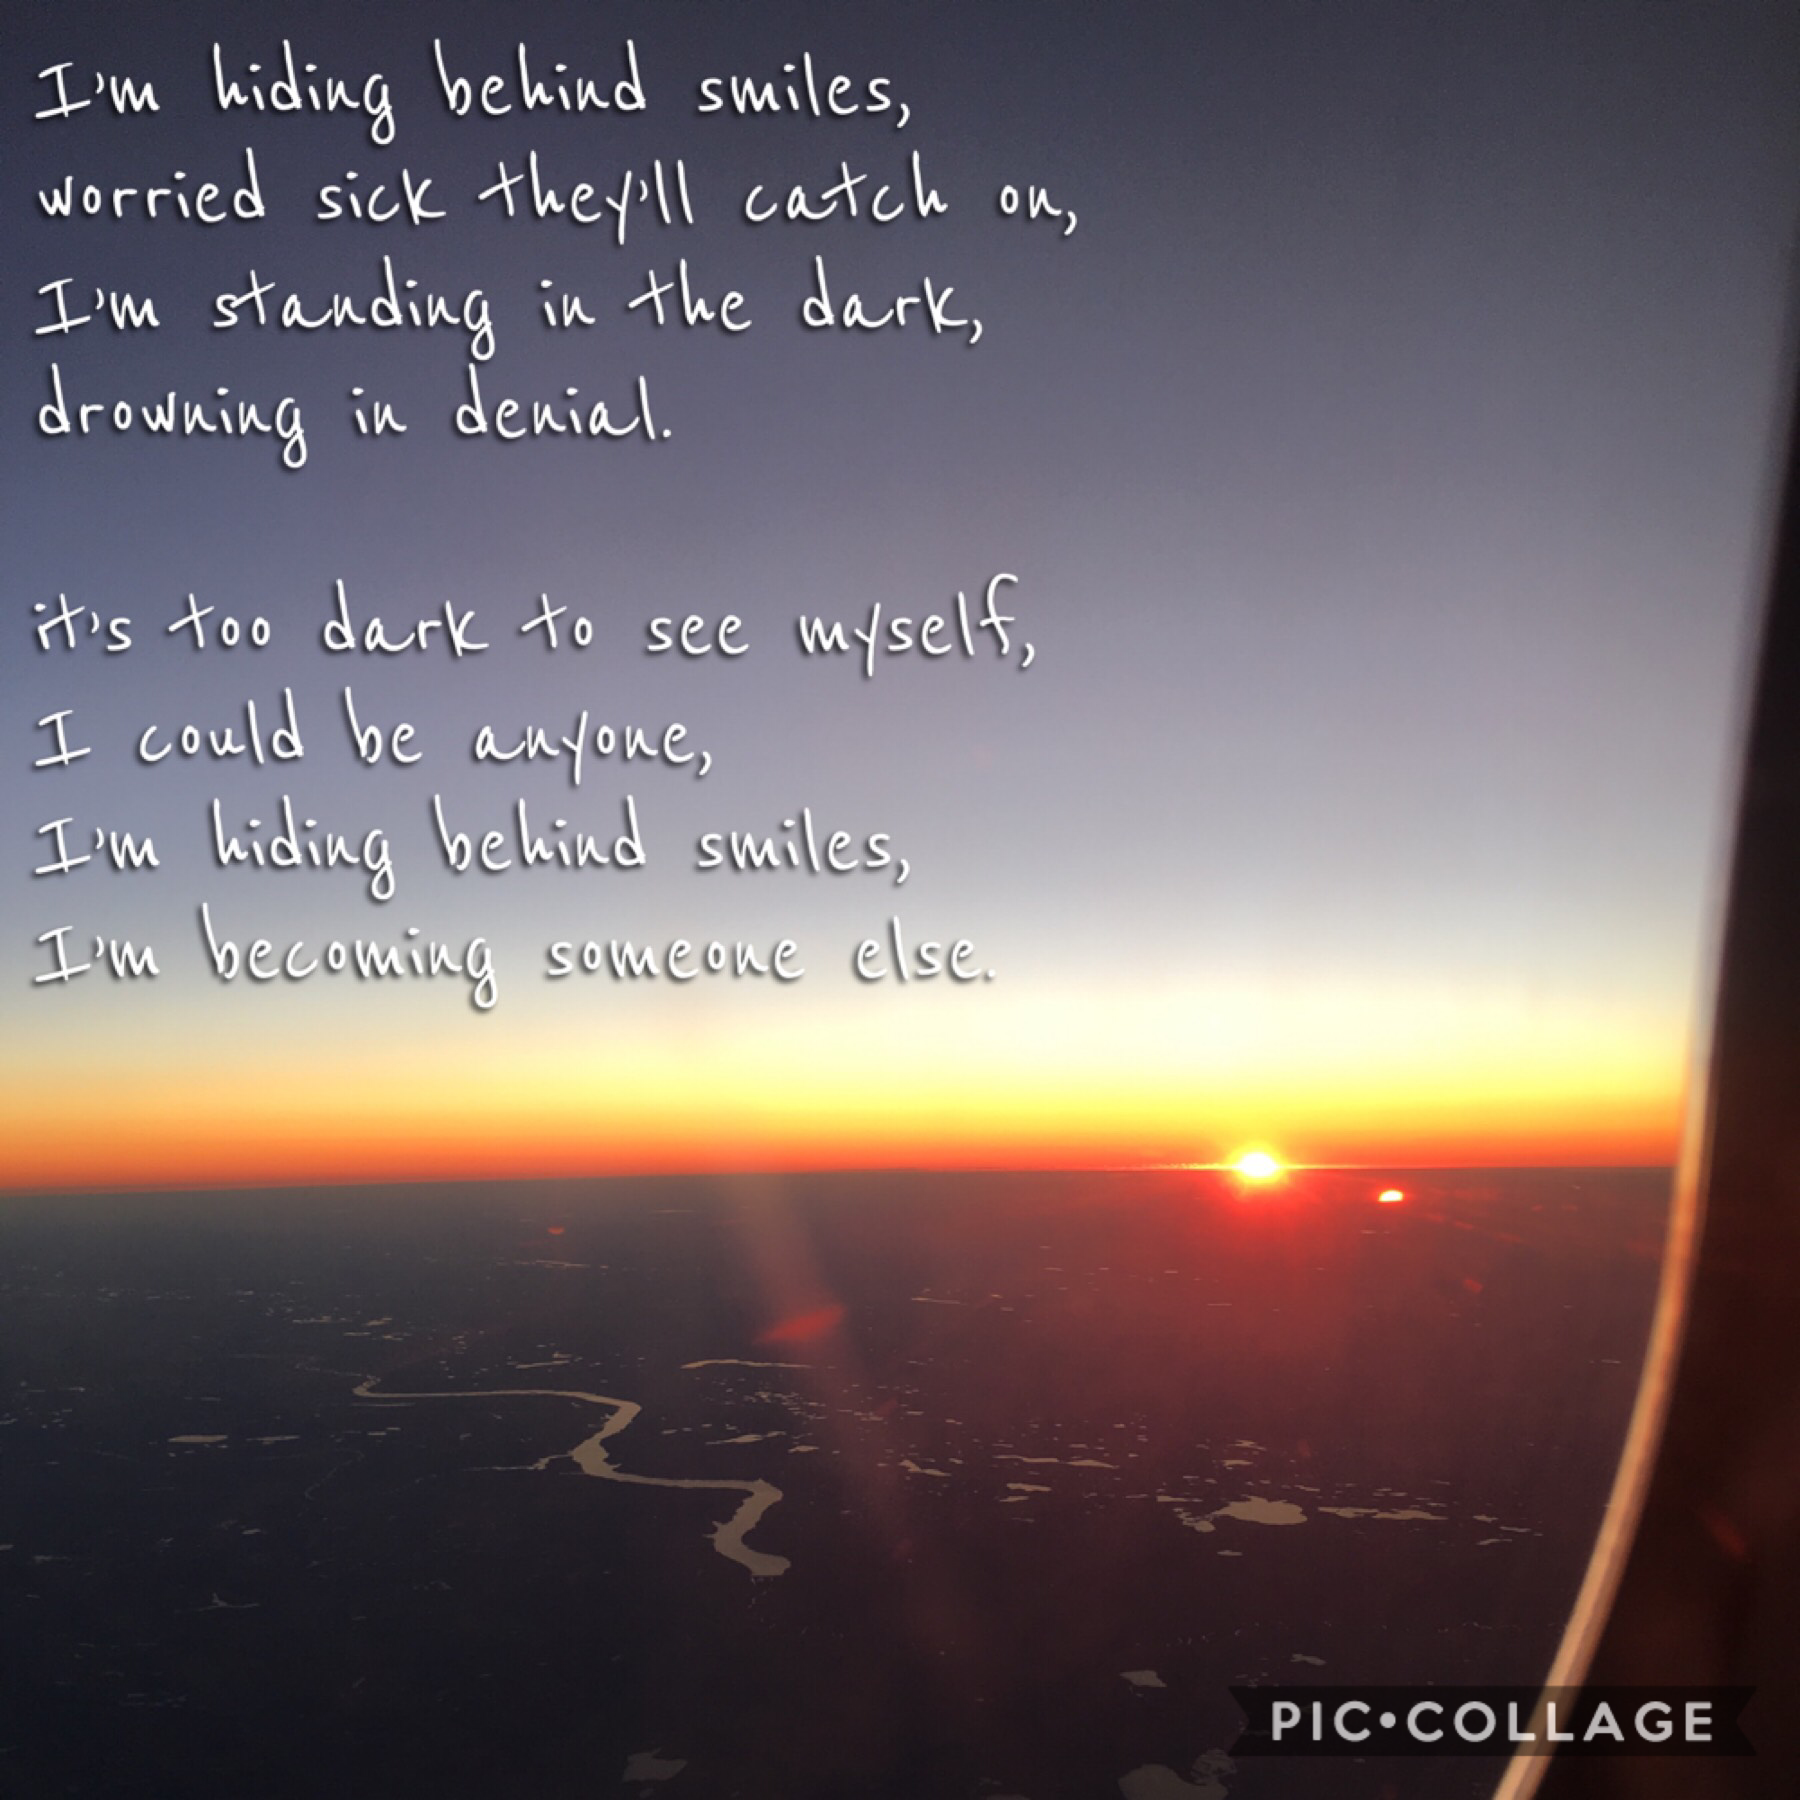 I wrote a poem and took this picture. Which do you prefer: sunrise or sunset?